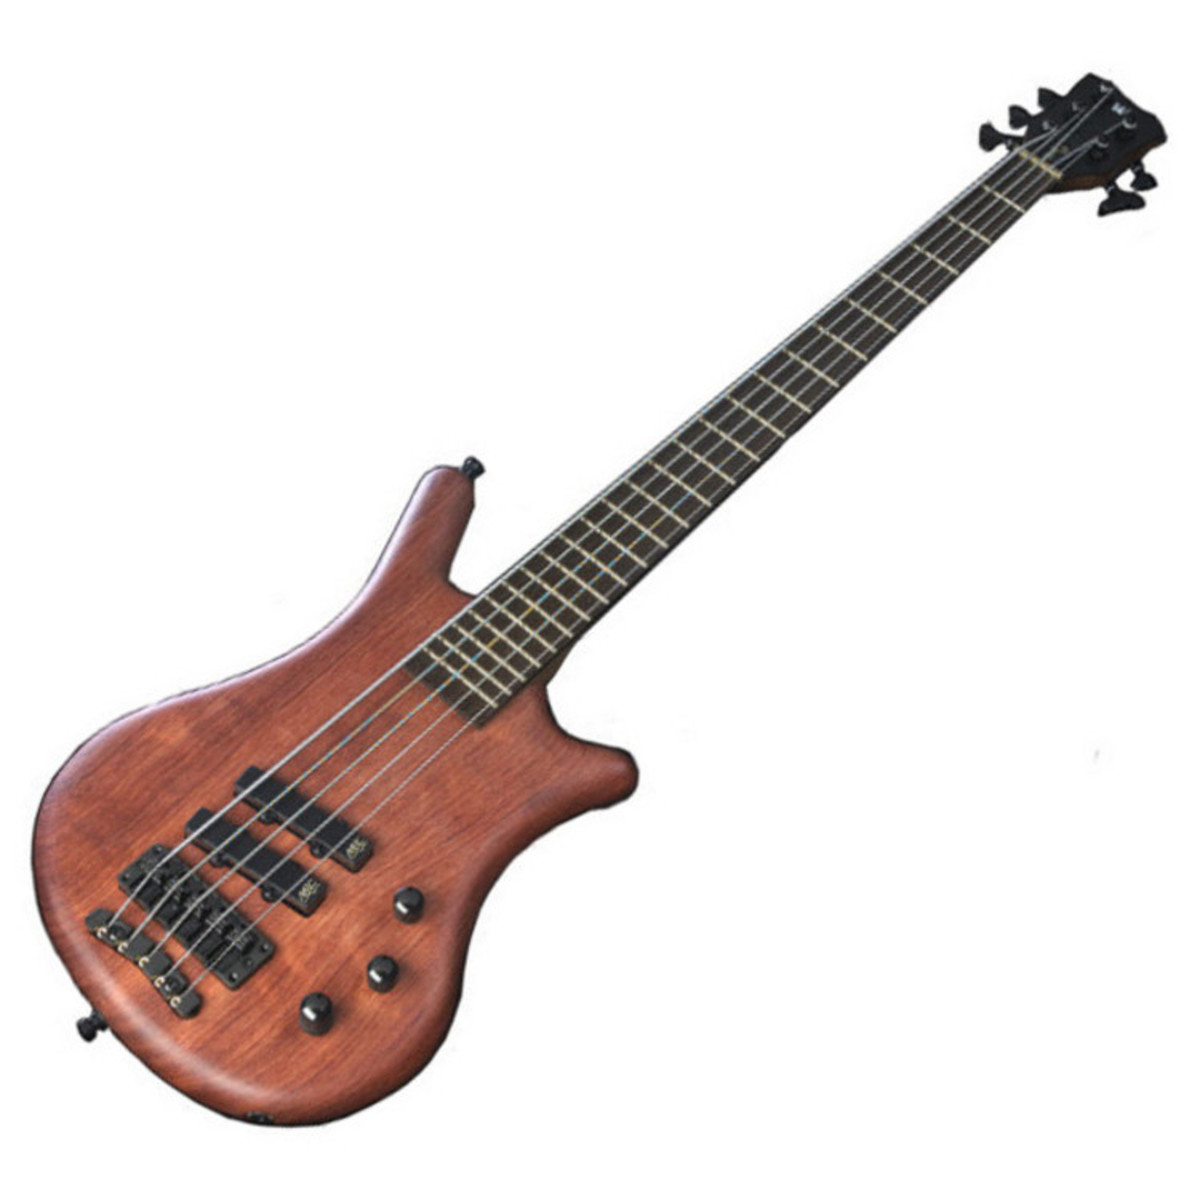 warwick thumb bolt on 5 string bass guitar natural oil finish at. Black Bedroom Furniture Sets. Home Design Ideas